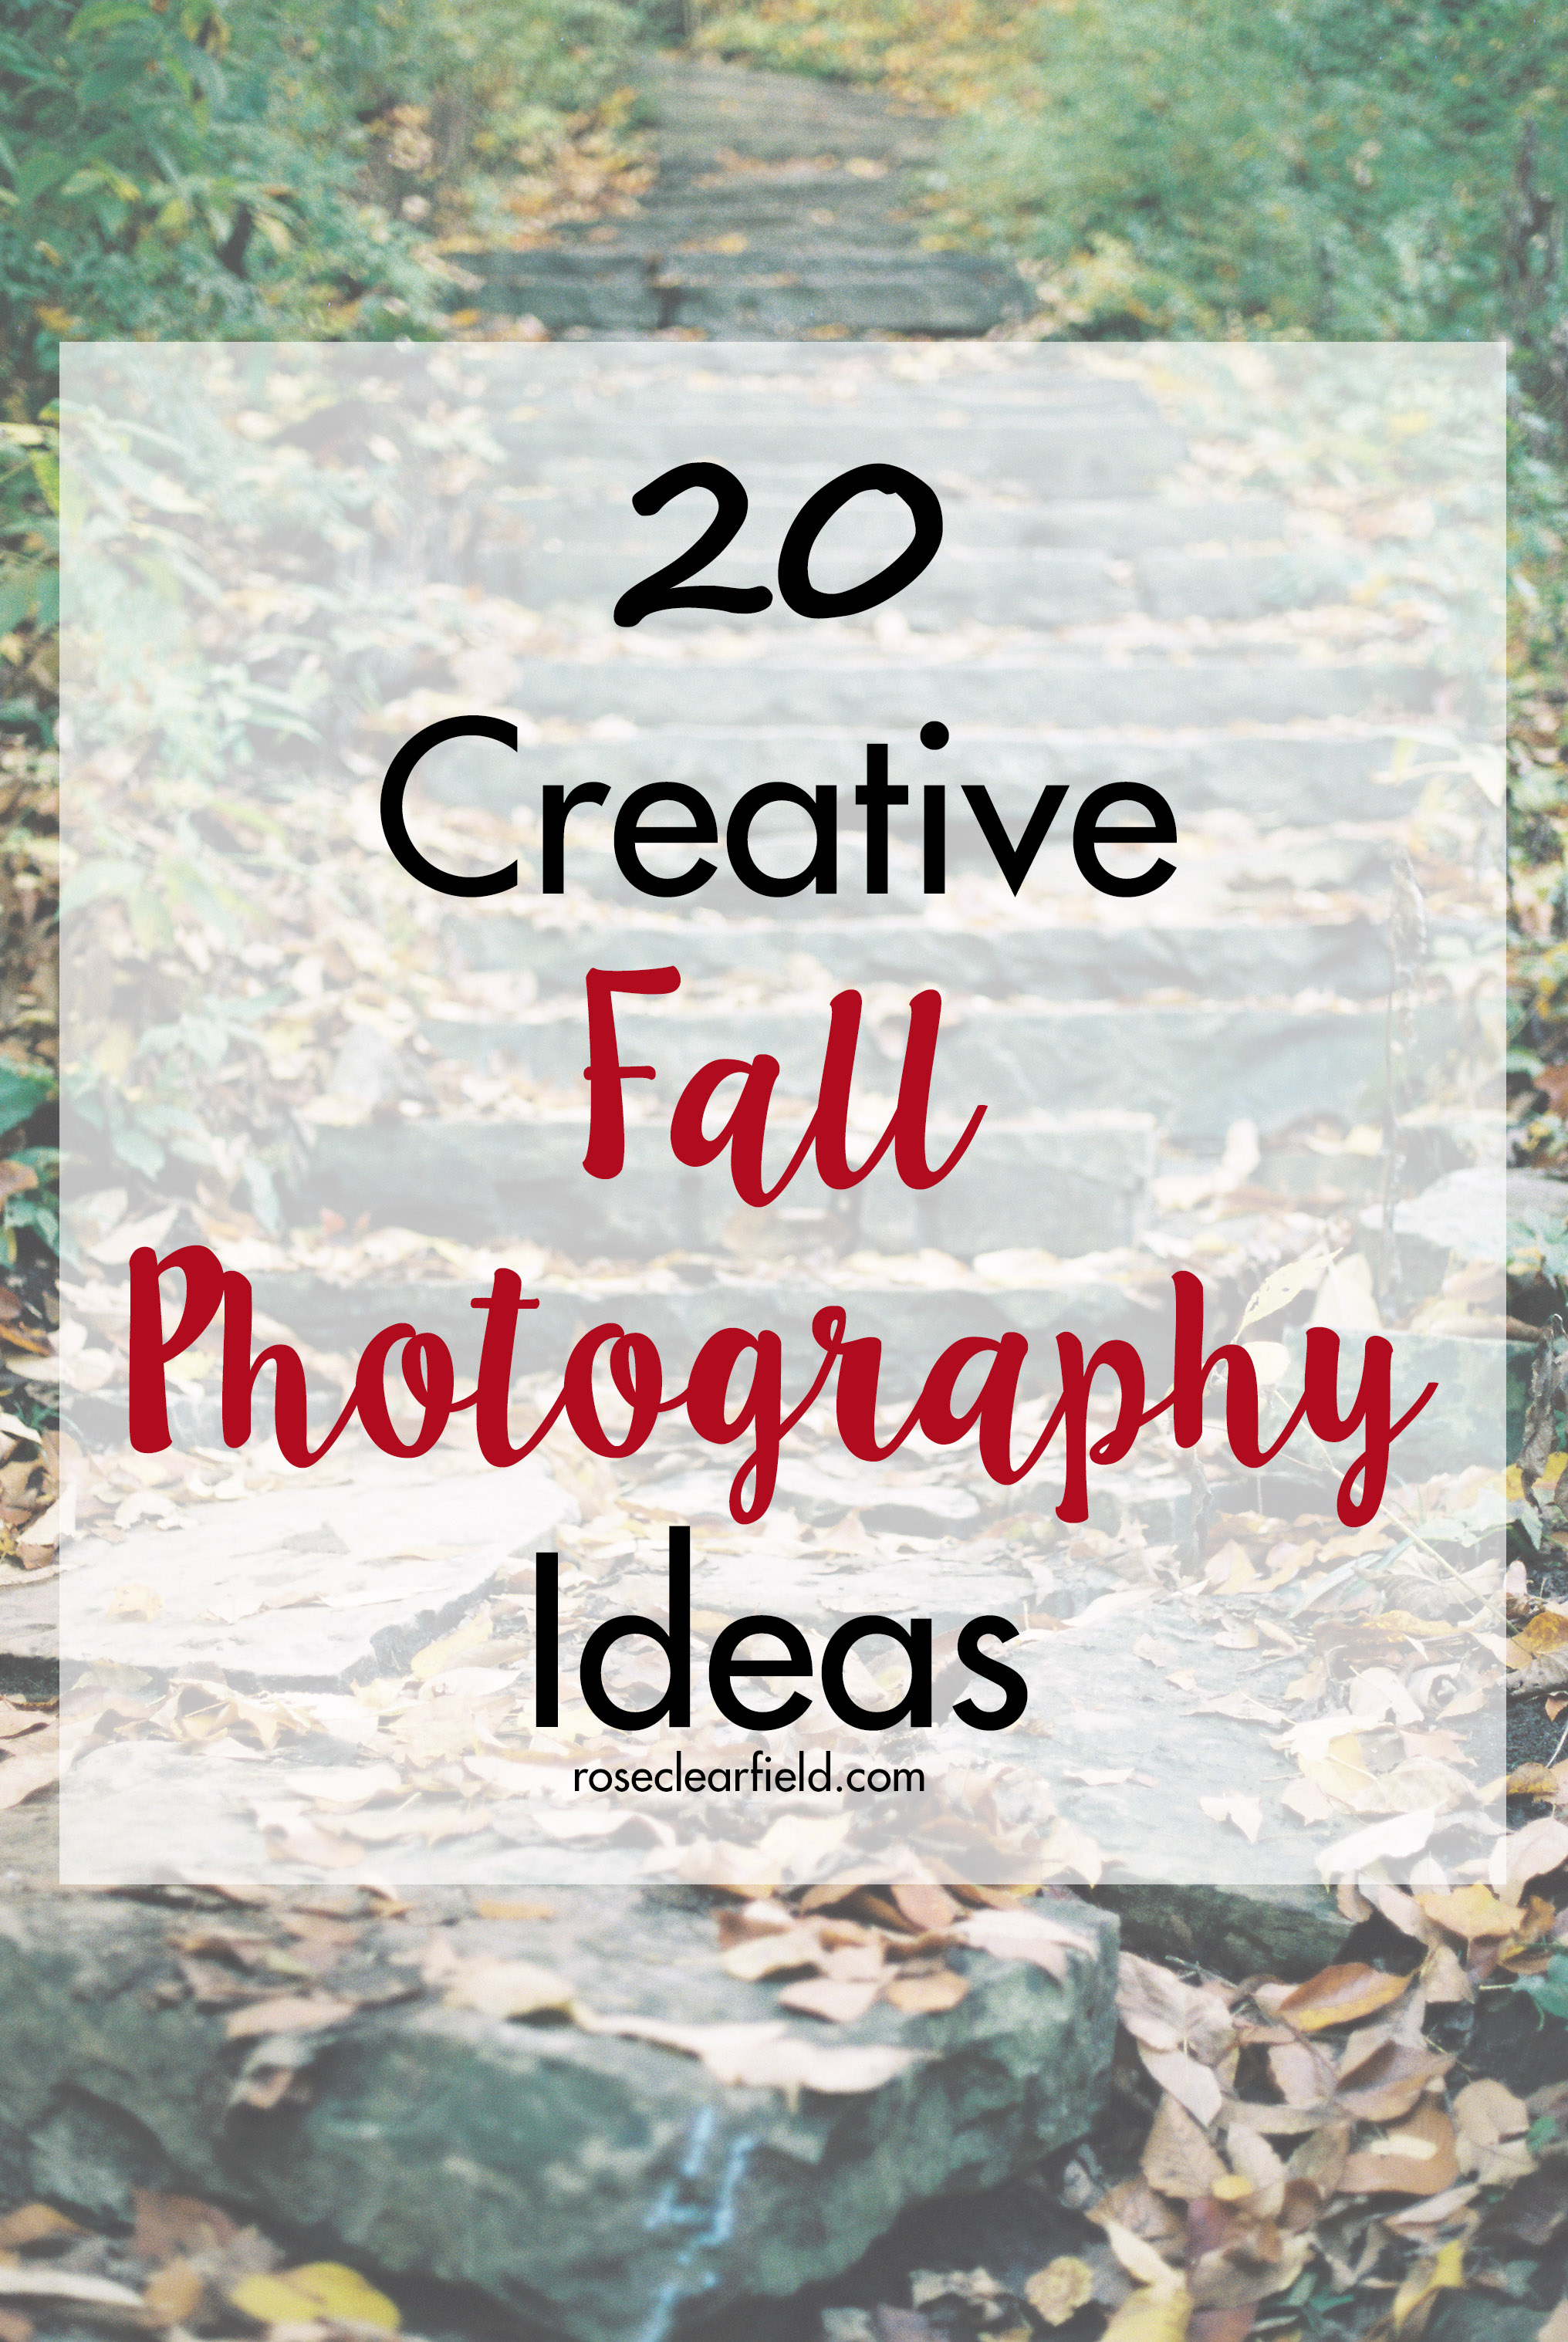 20 Creative Fall Photography Ideas | http://www.roseclearfield.com